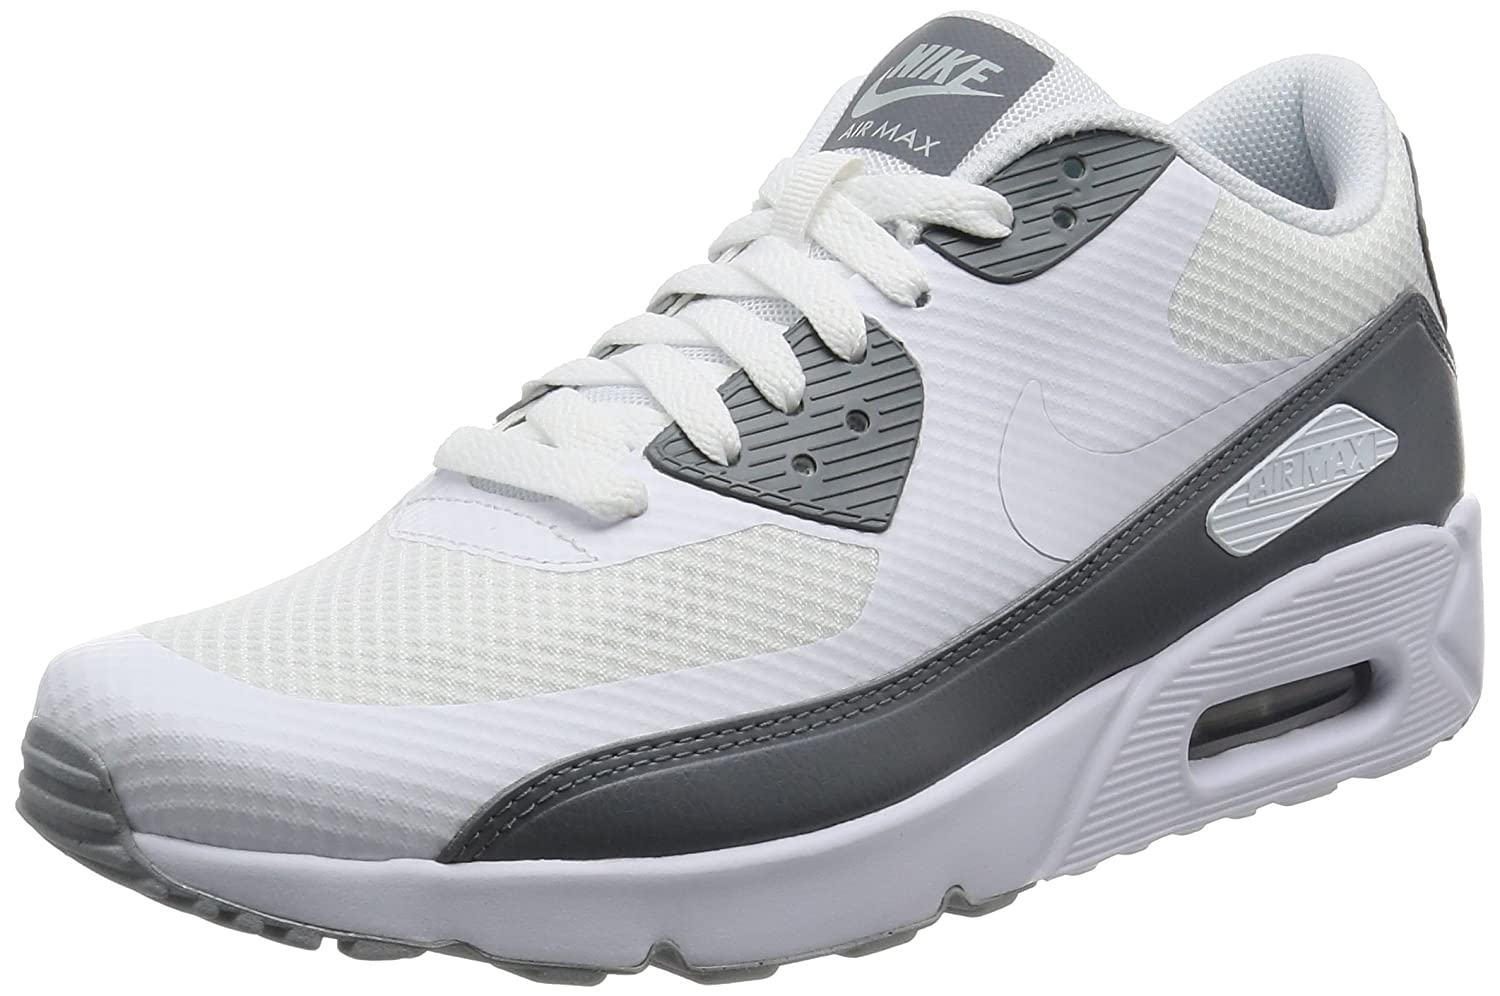 2019 Nike Air Max 90 Ultra 2.0 Essential White Cool Grey Men